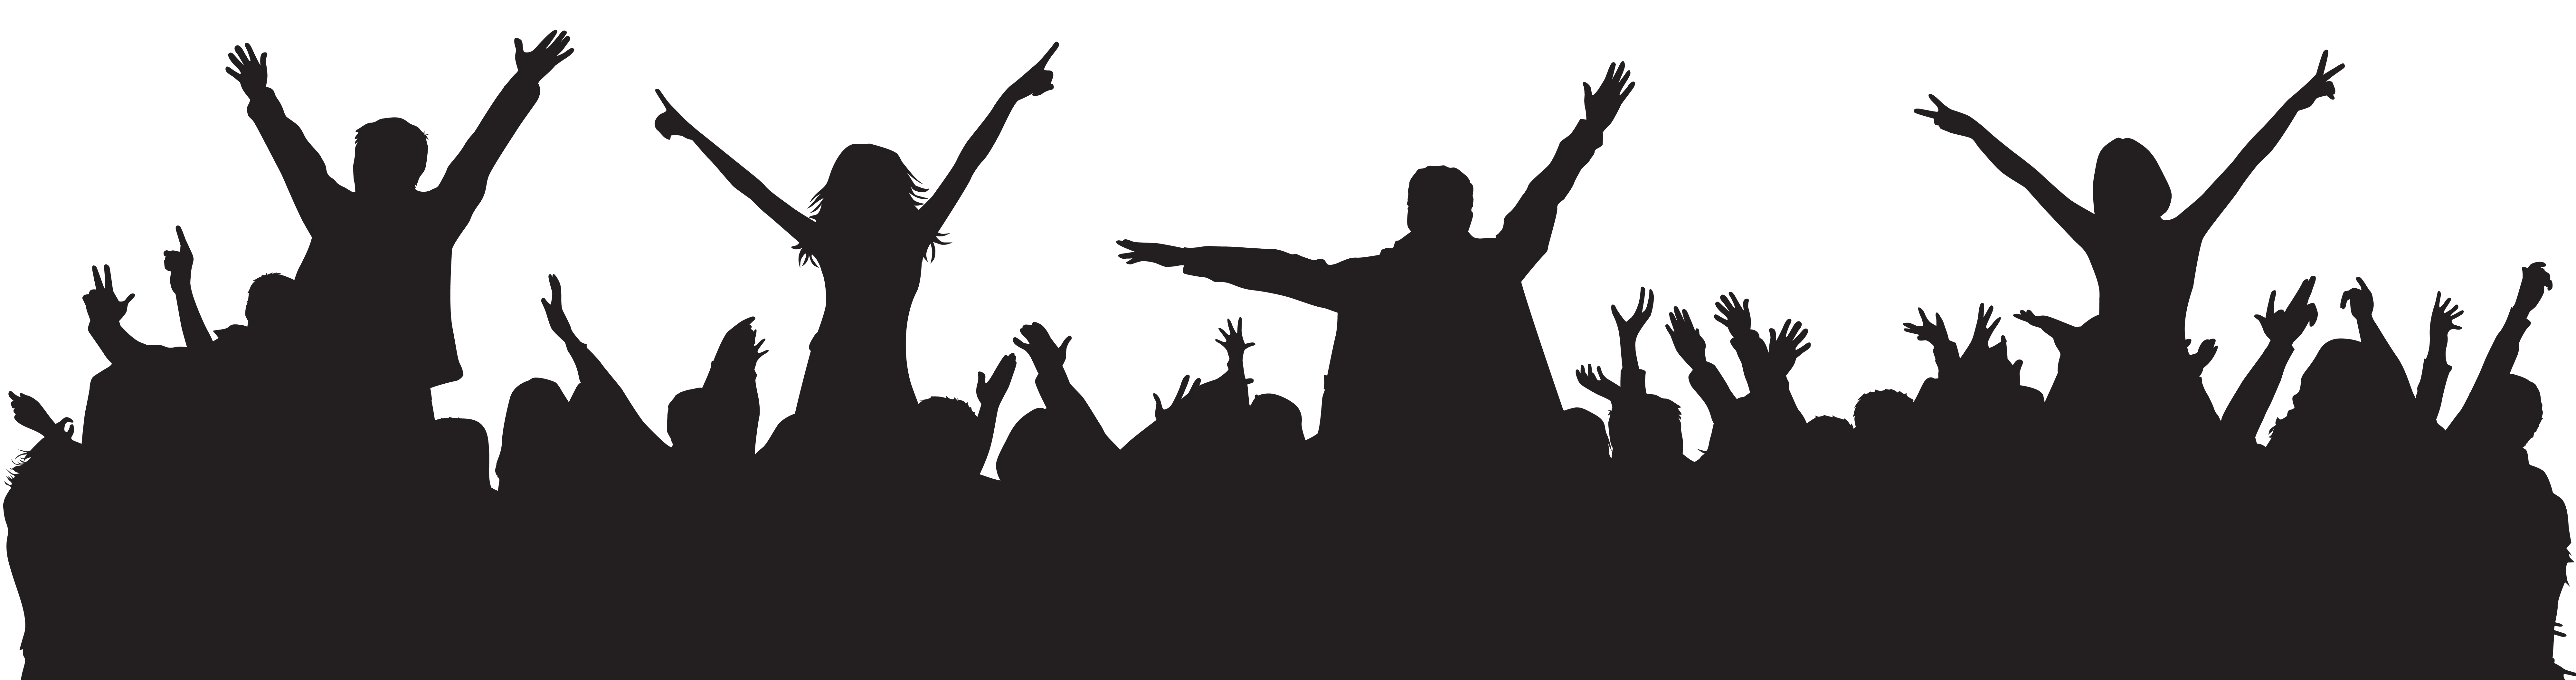 clip freeuse library Audience clipart transparent. Party people silhouette png.